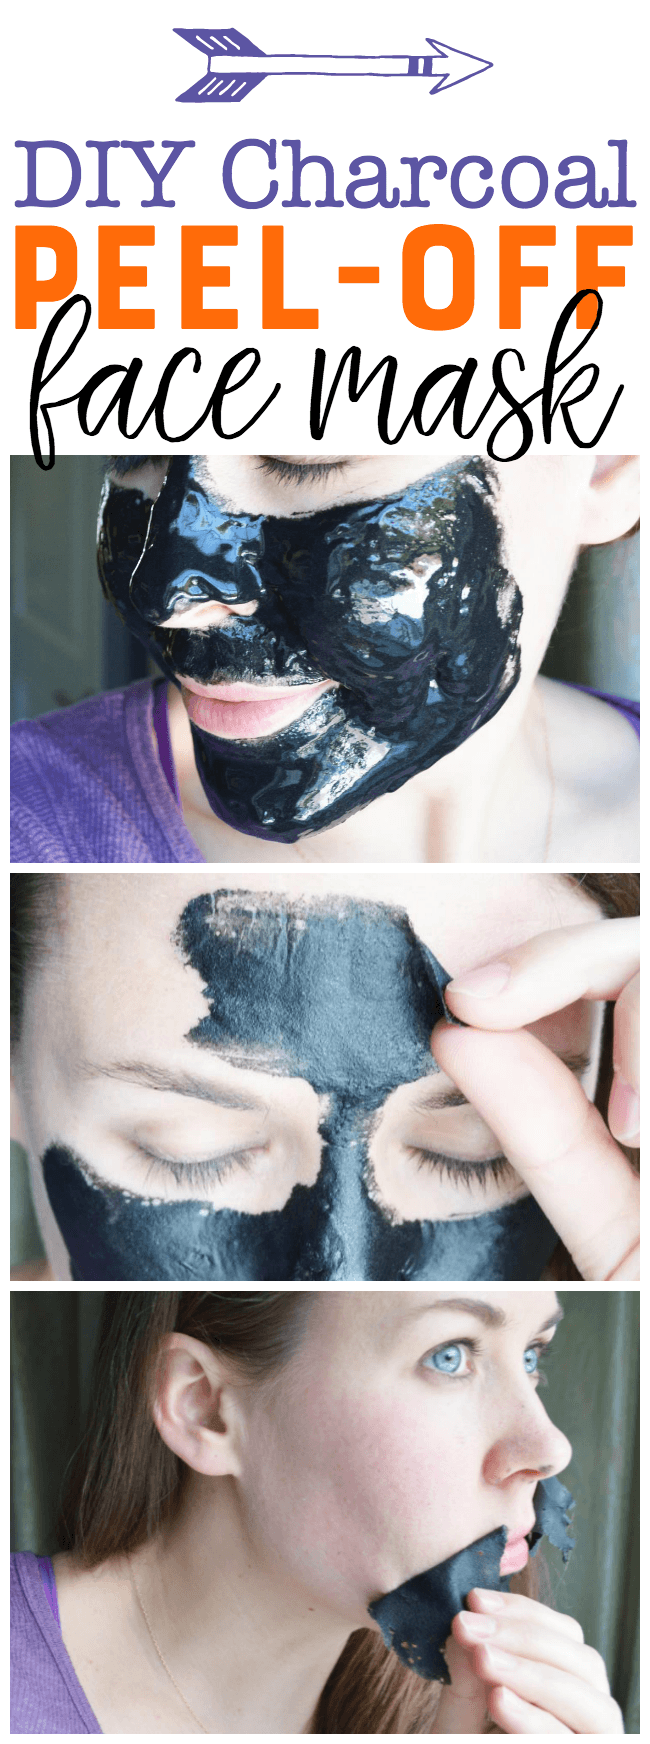 Looking for something that can deeply cleanse your pores? This peel-off mask made from charcoal and bentonite is exactly what you're looking for.